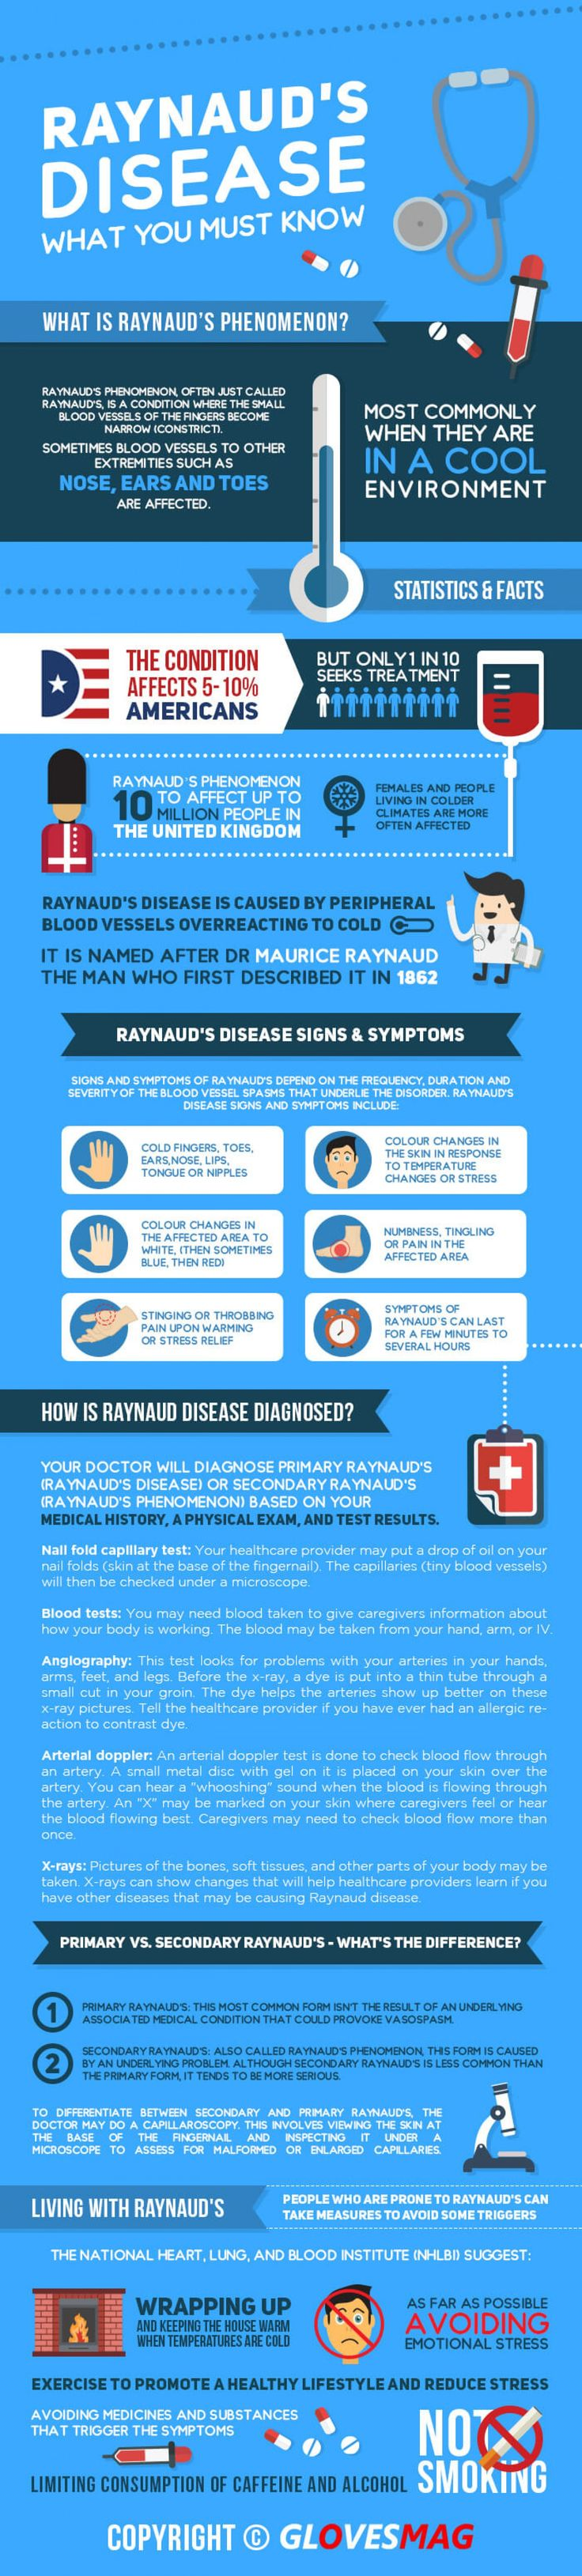 Raynaud's Disease:  What You Must Know Infographic